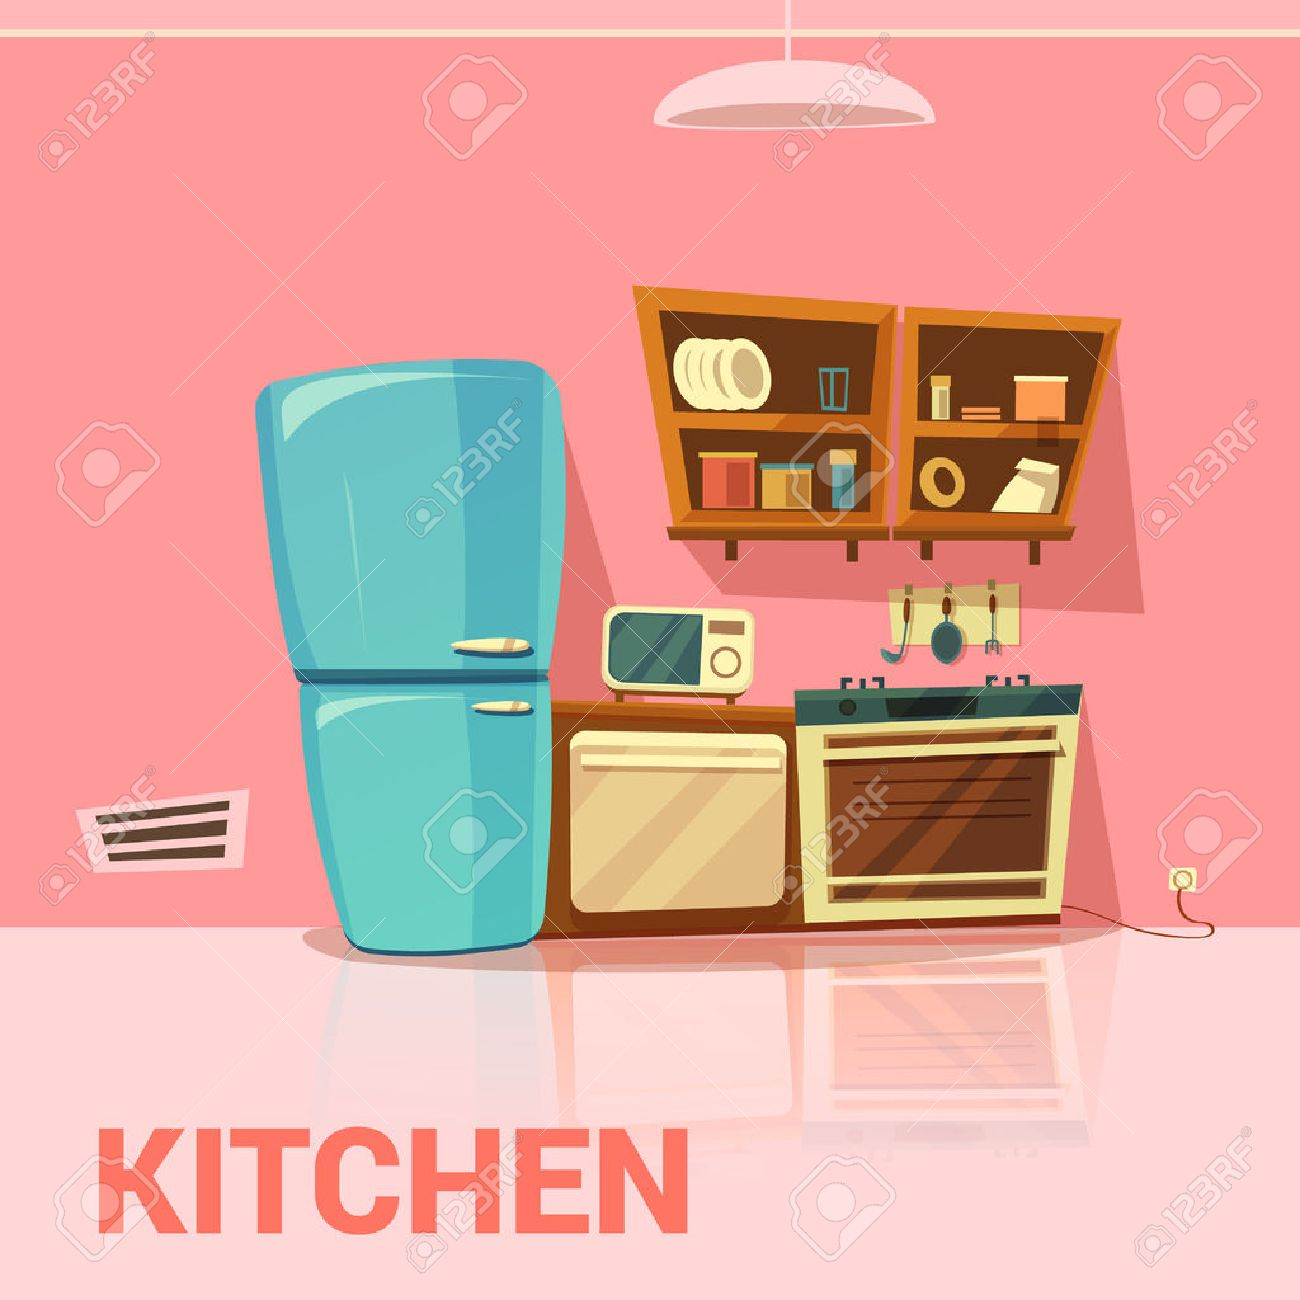 Kitchen Retro Design With Fridge Microwave Oven And Cooker Cartoon Vector  Illustration Stock Vector   52695573